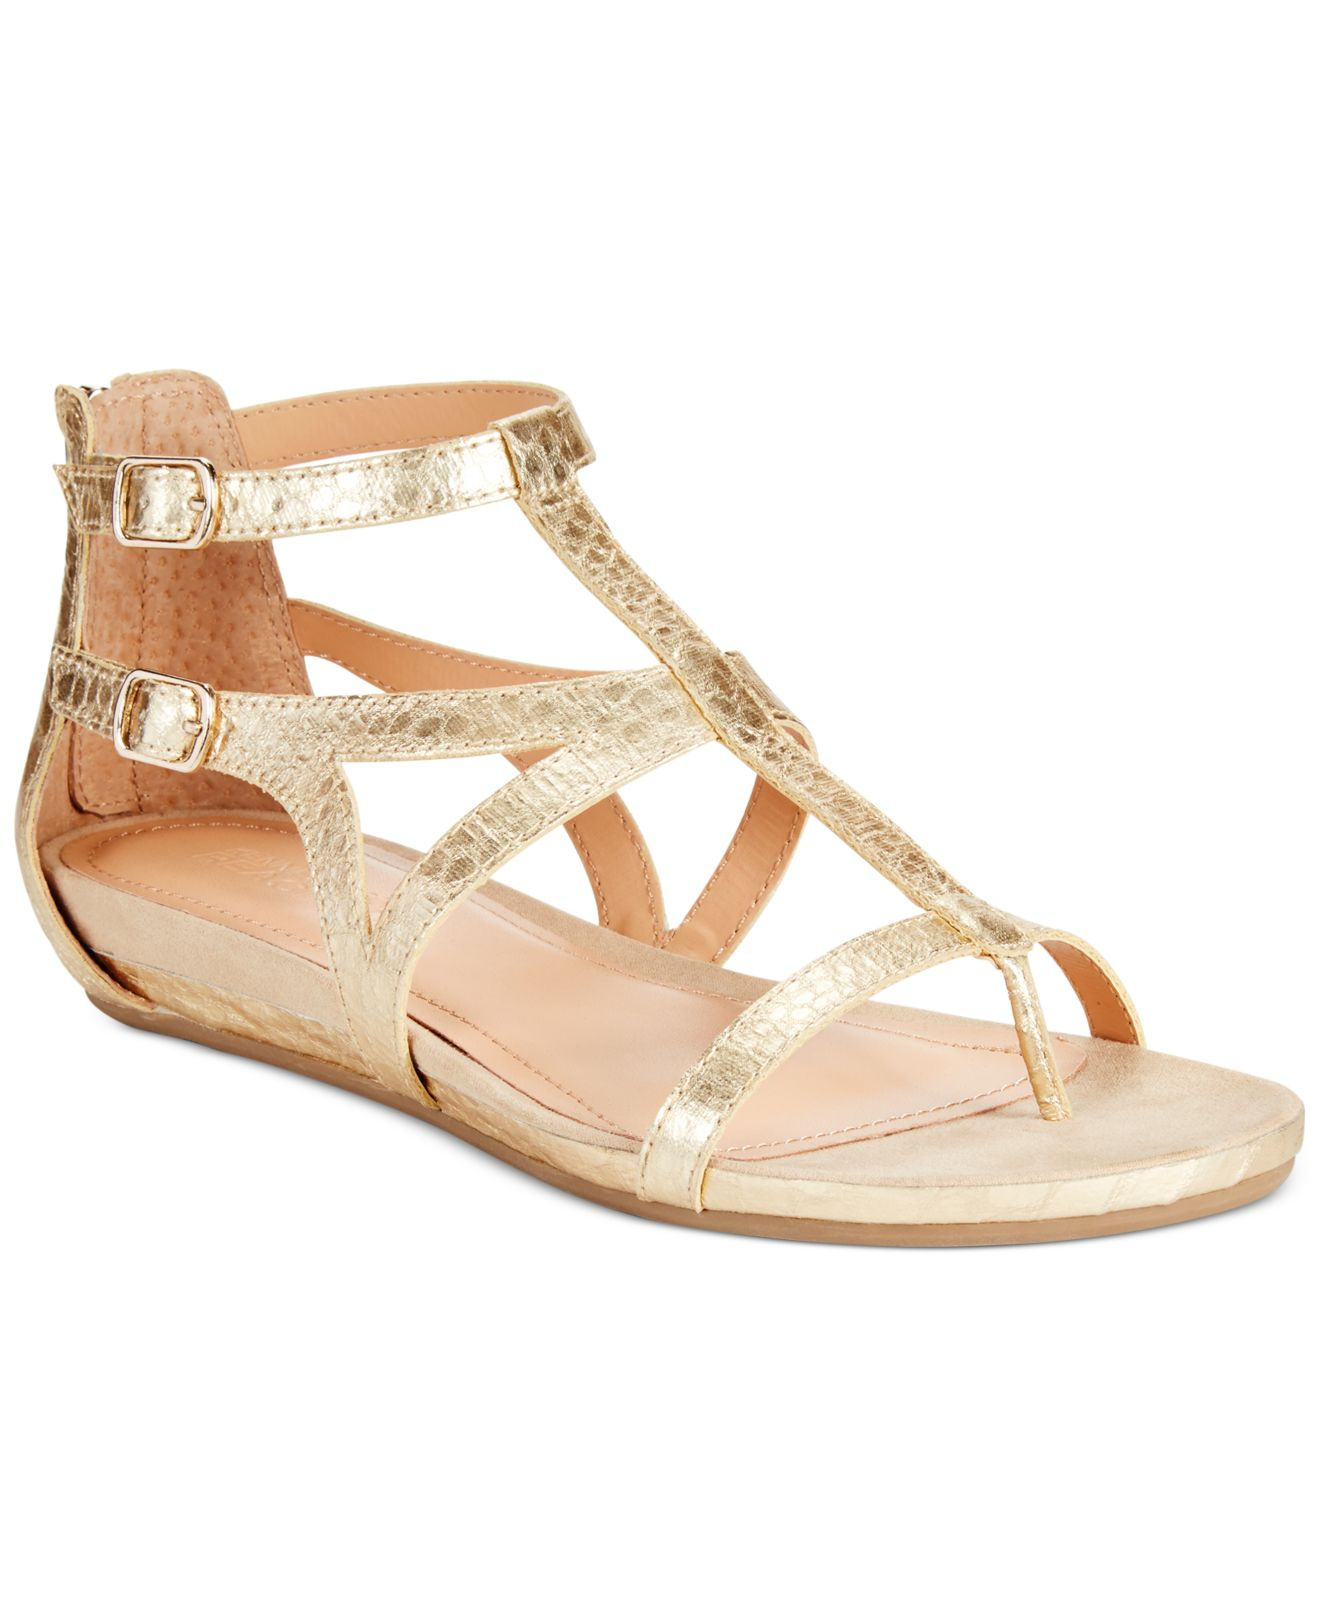 b38ae6b7d593 Lyst - Kenneth Cole Reaction Women s Lost Time Gladiator Sandals in ...